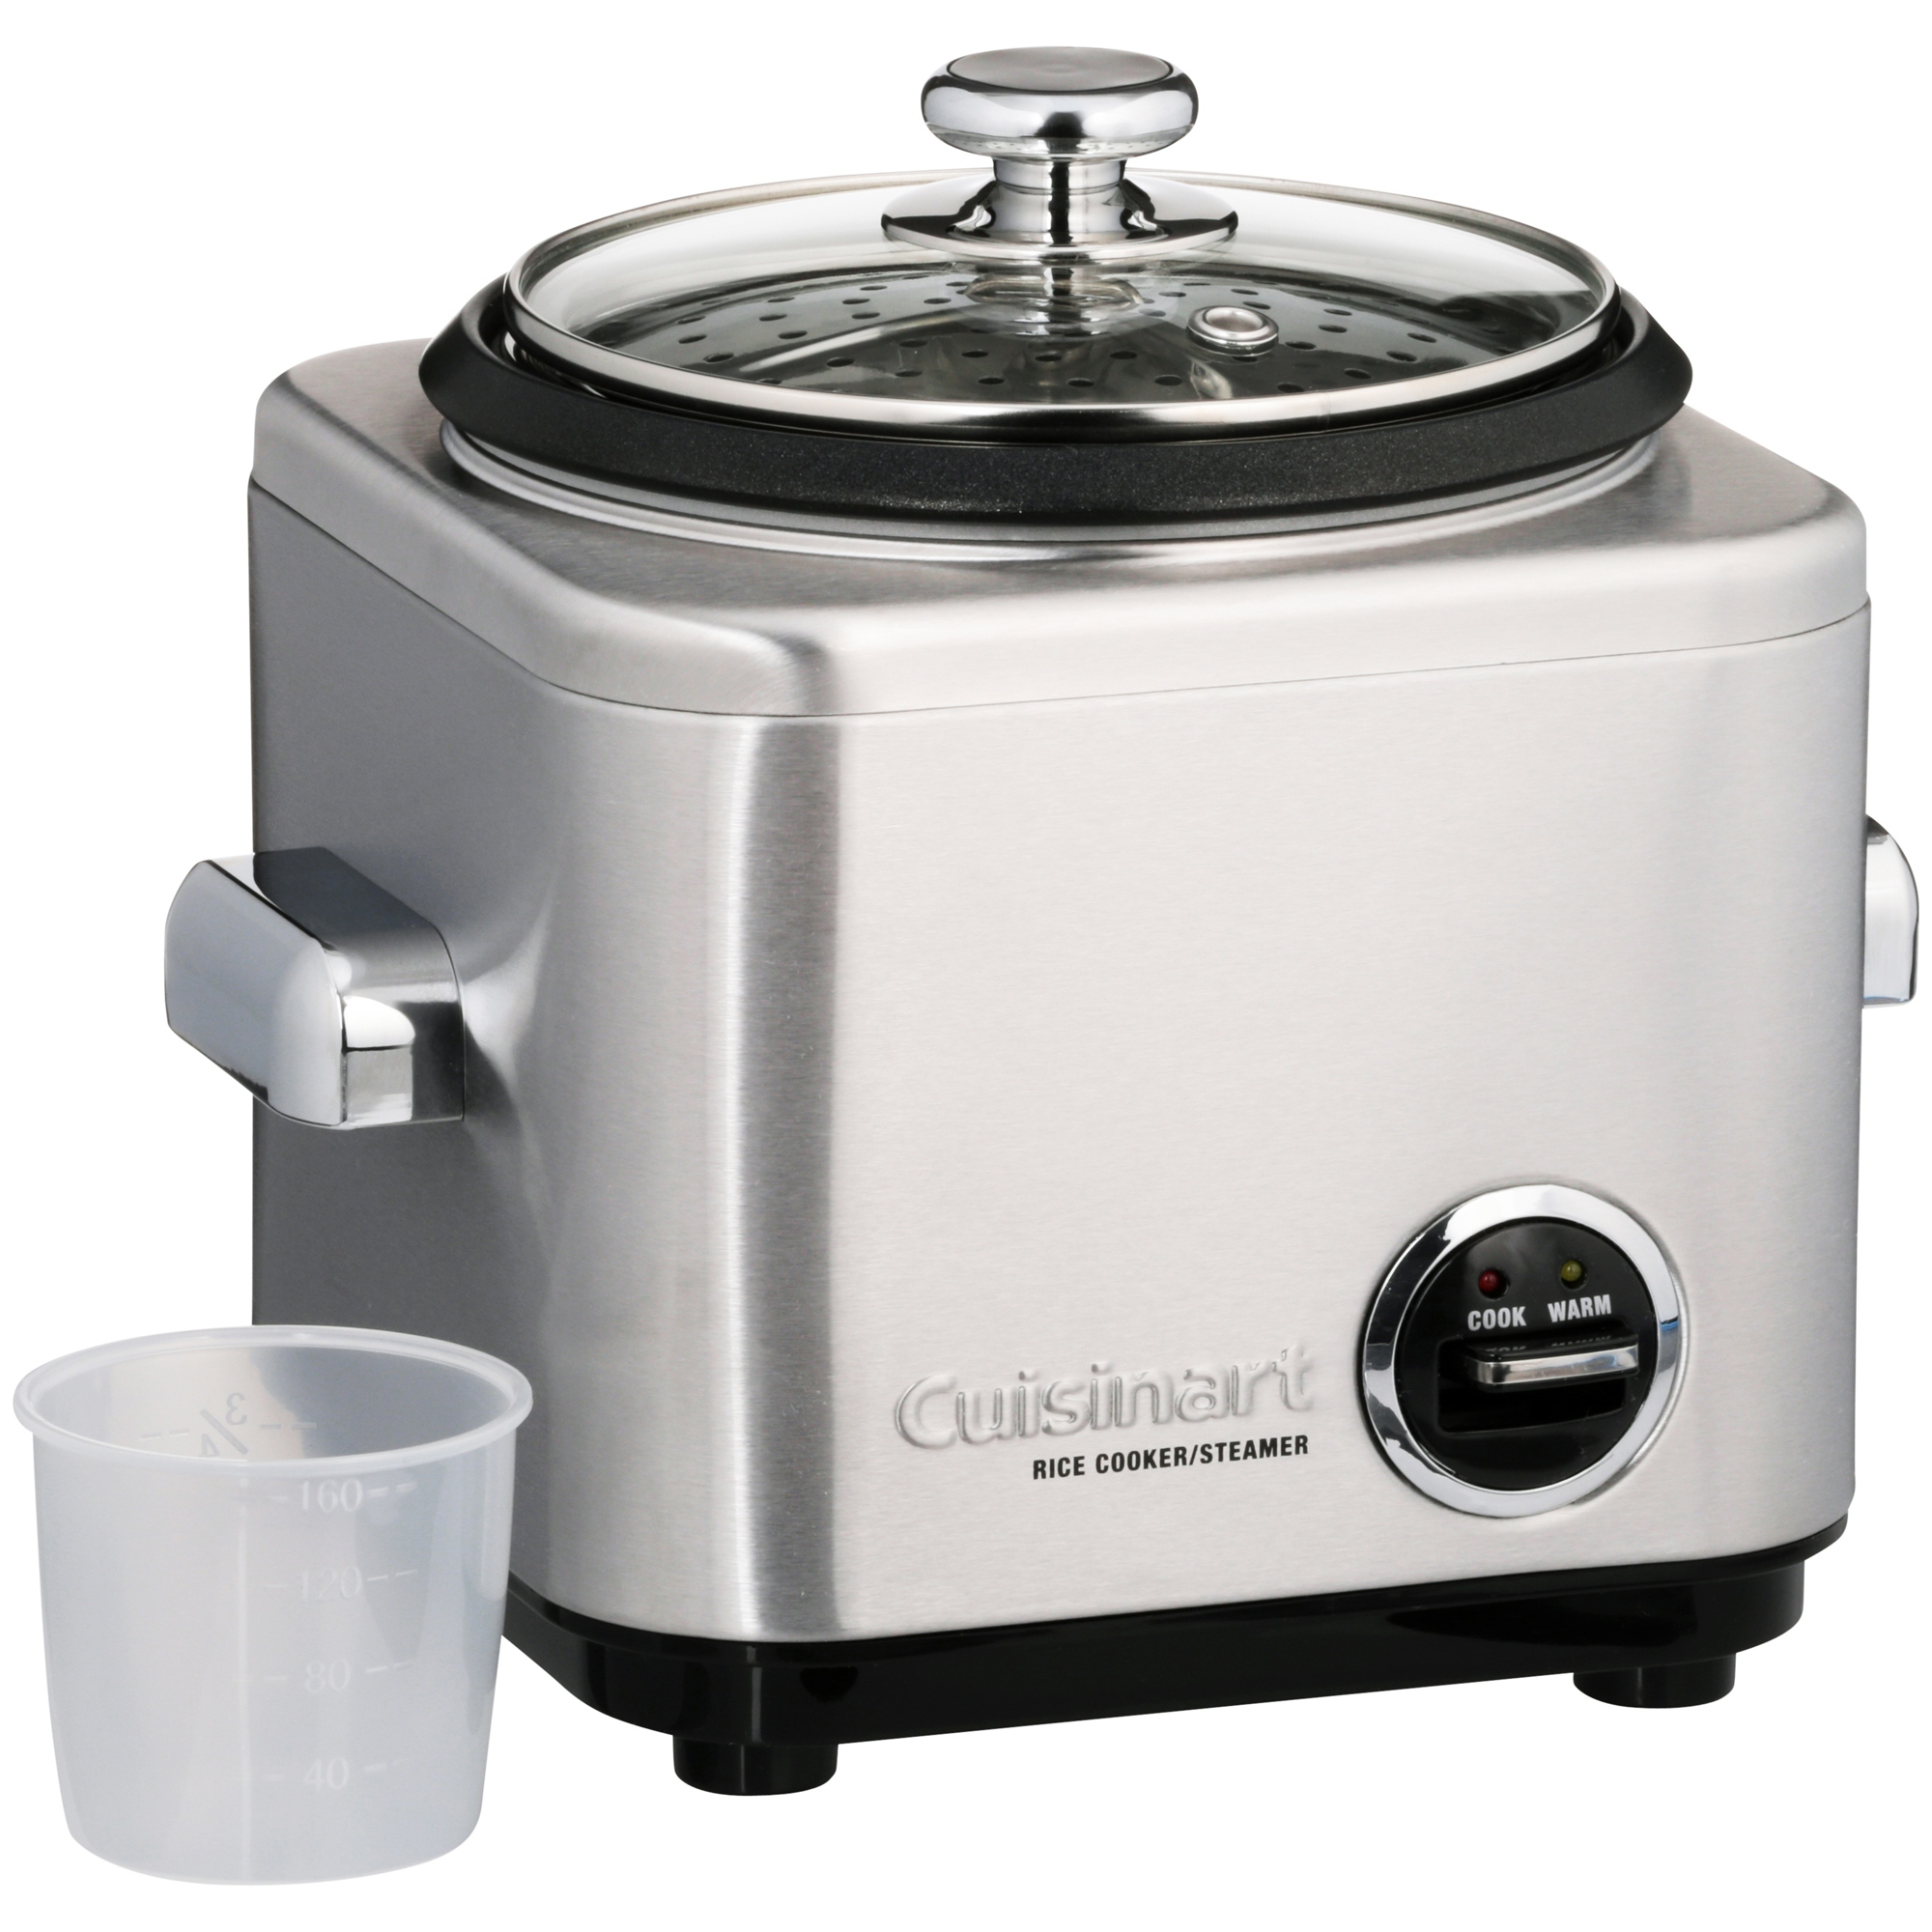 Cuisinart® 4-Cup Rice Cooker & Steamer 4 pc Box